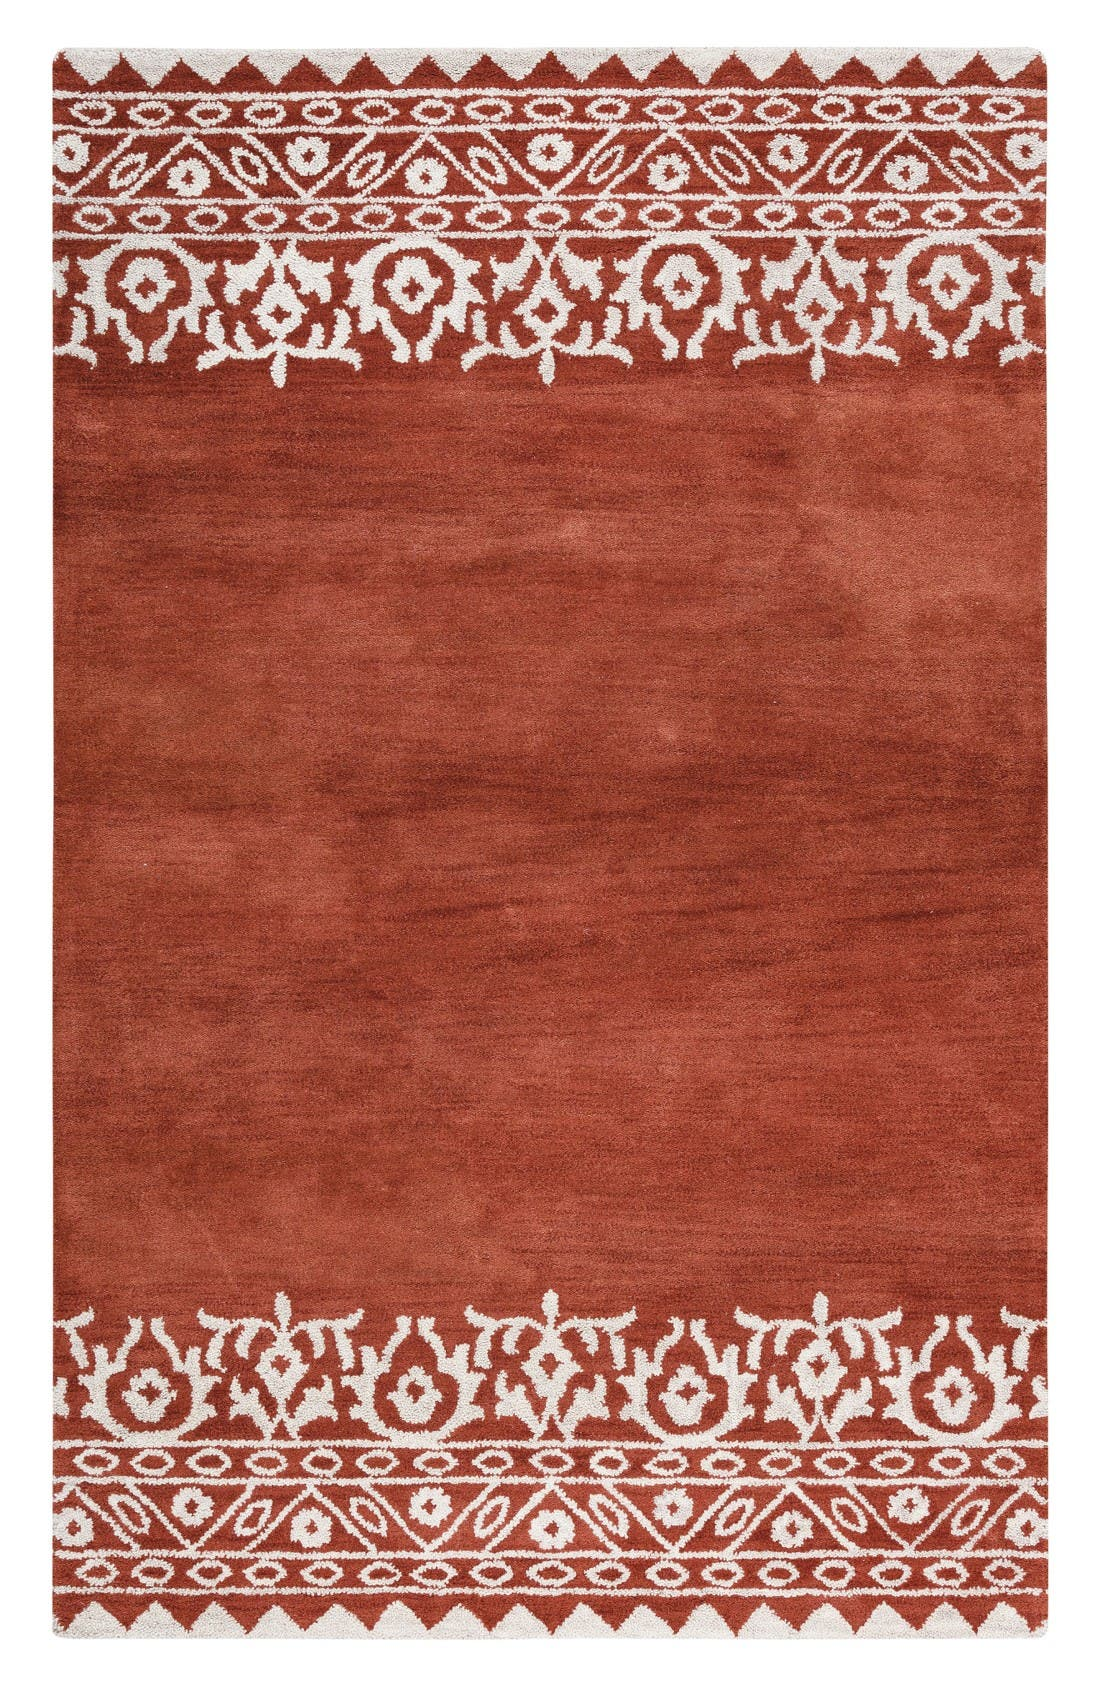 Framed Medallion Hand Tufted Wool Area Rug,                             Main thumbnail 1, color,                             Rust